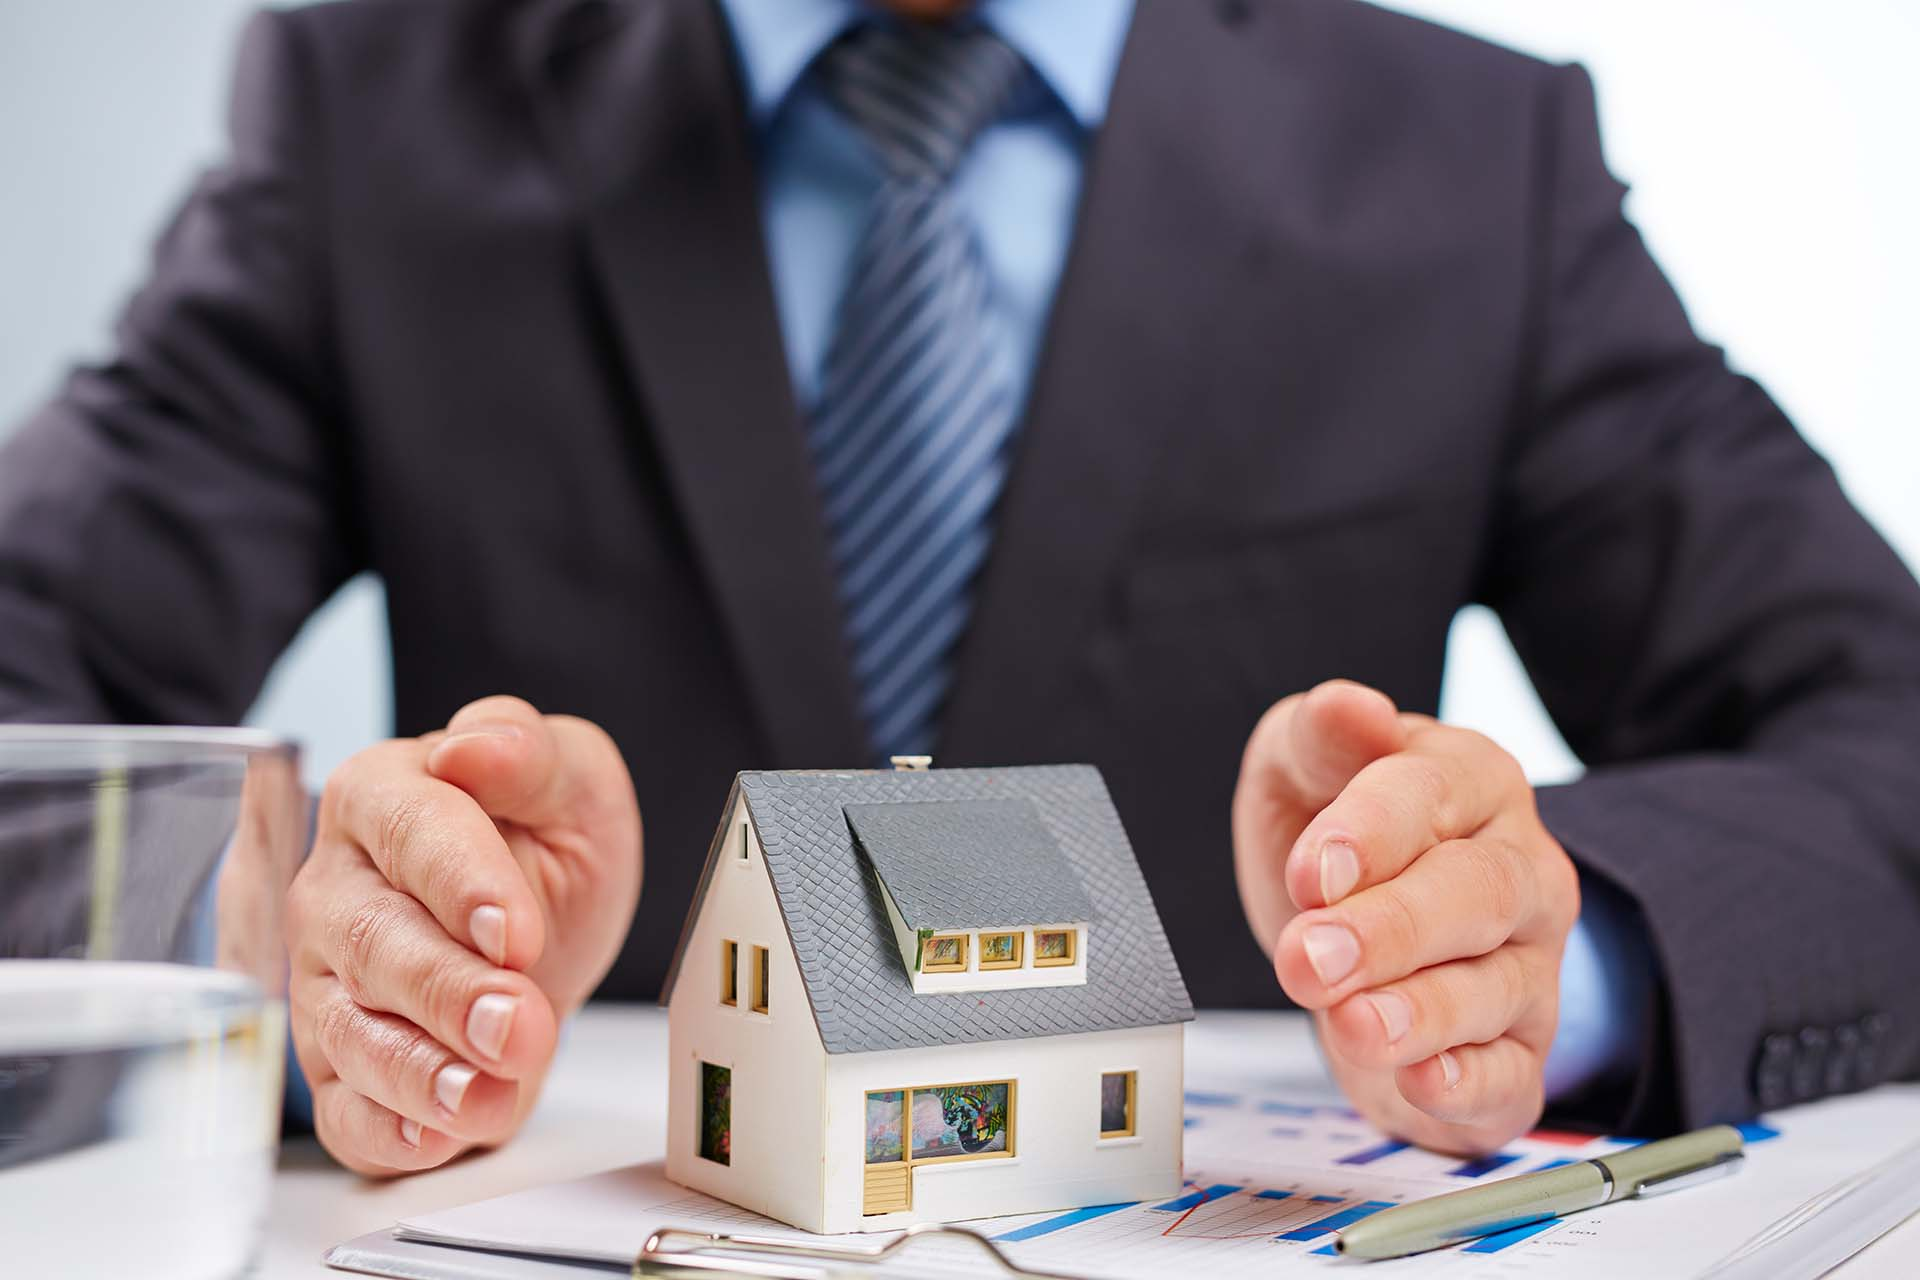 5 tips to increase your chances of getting a mortgage approved